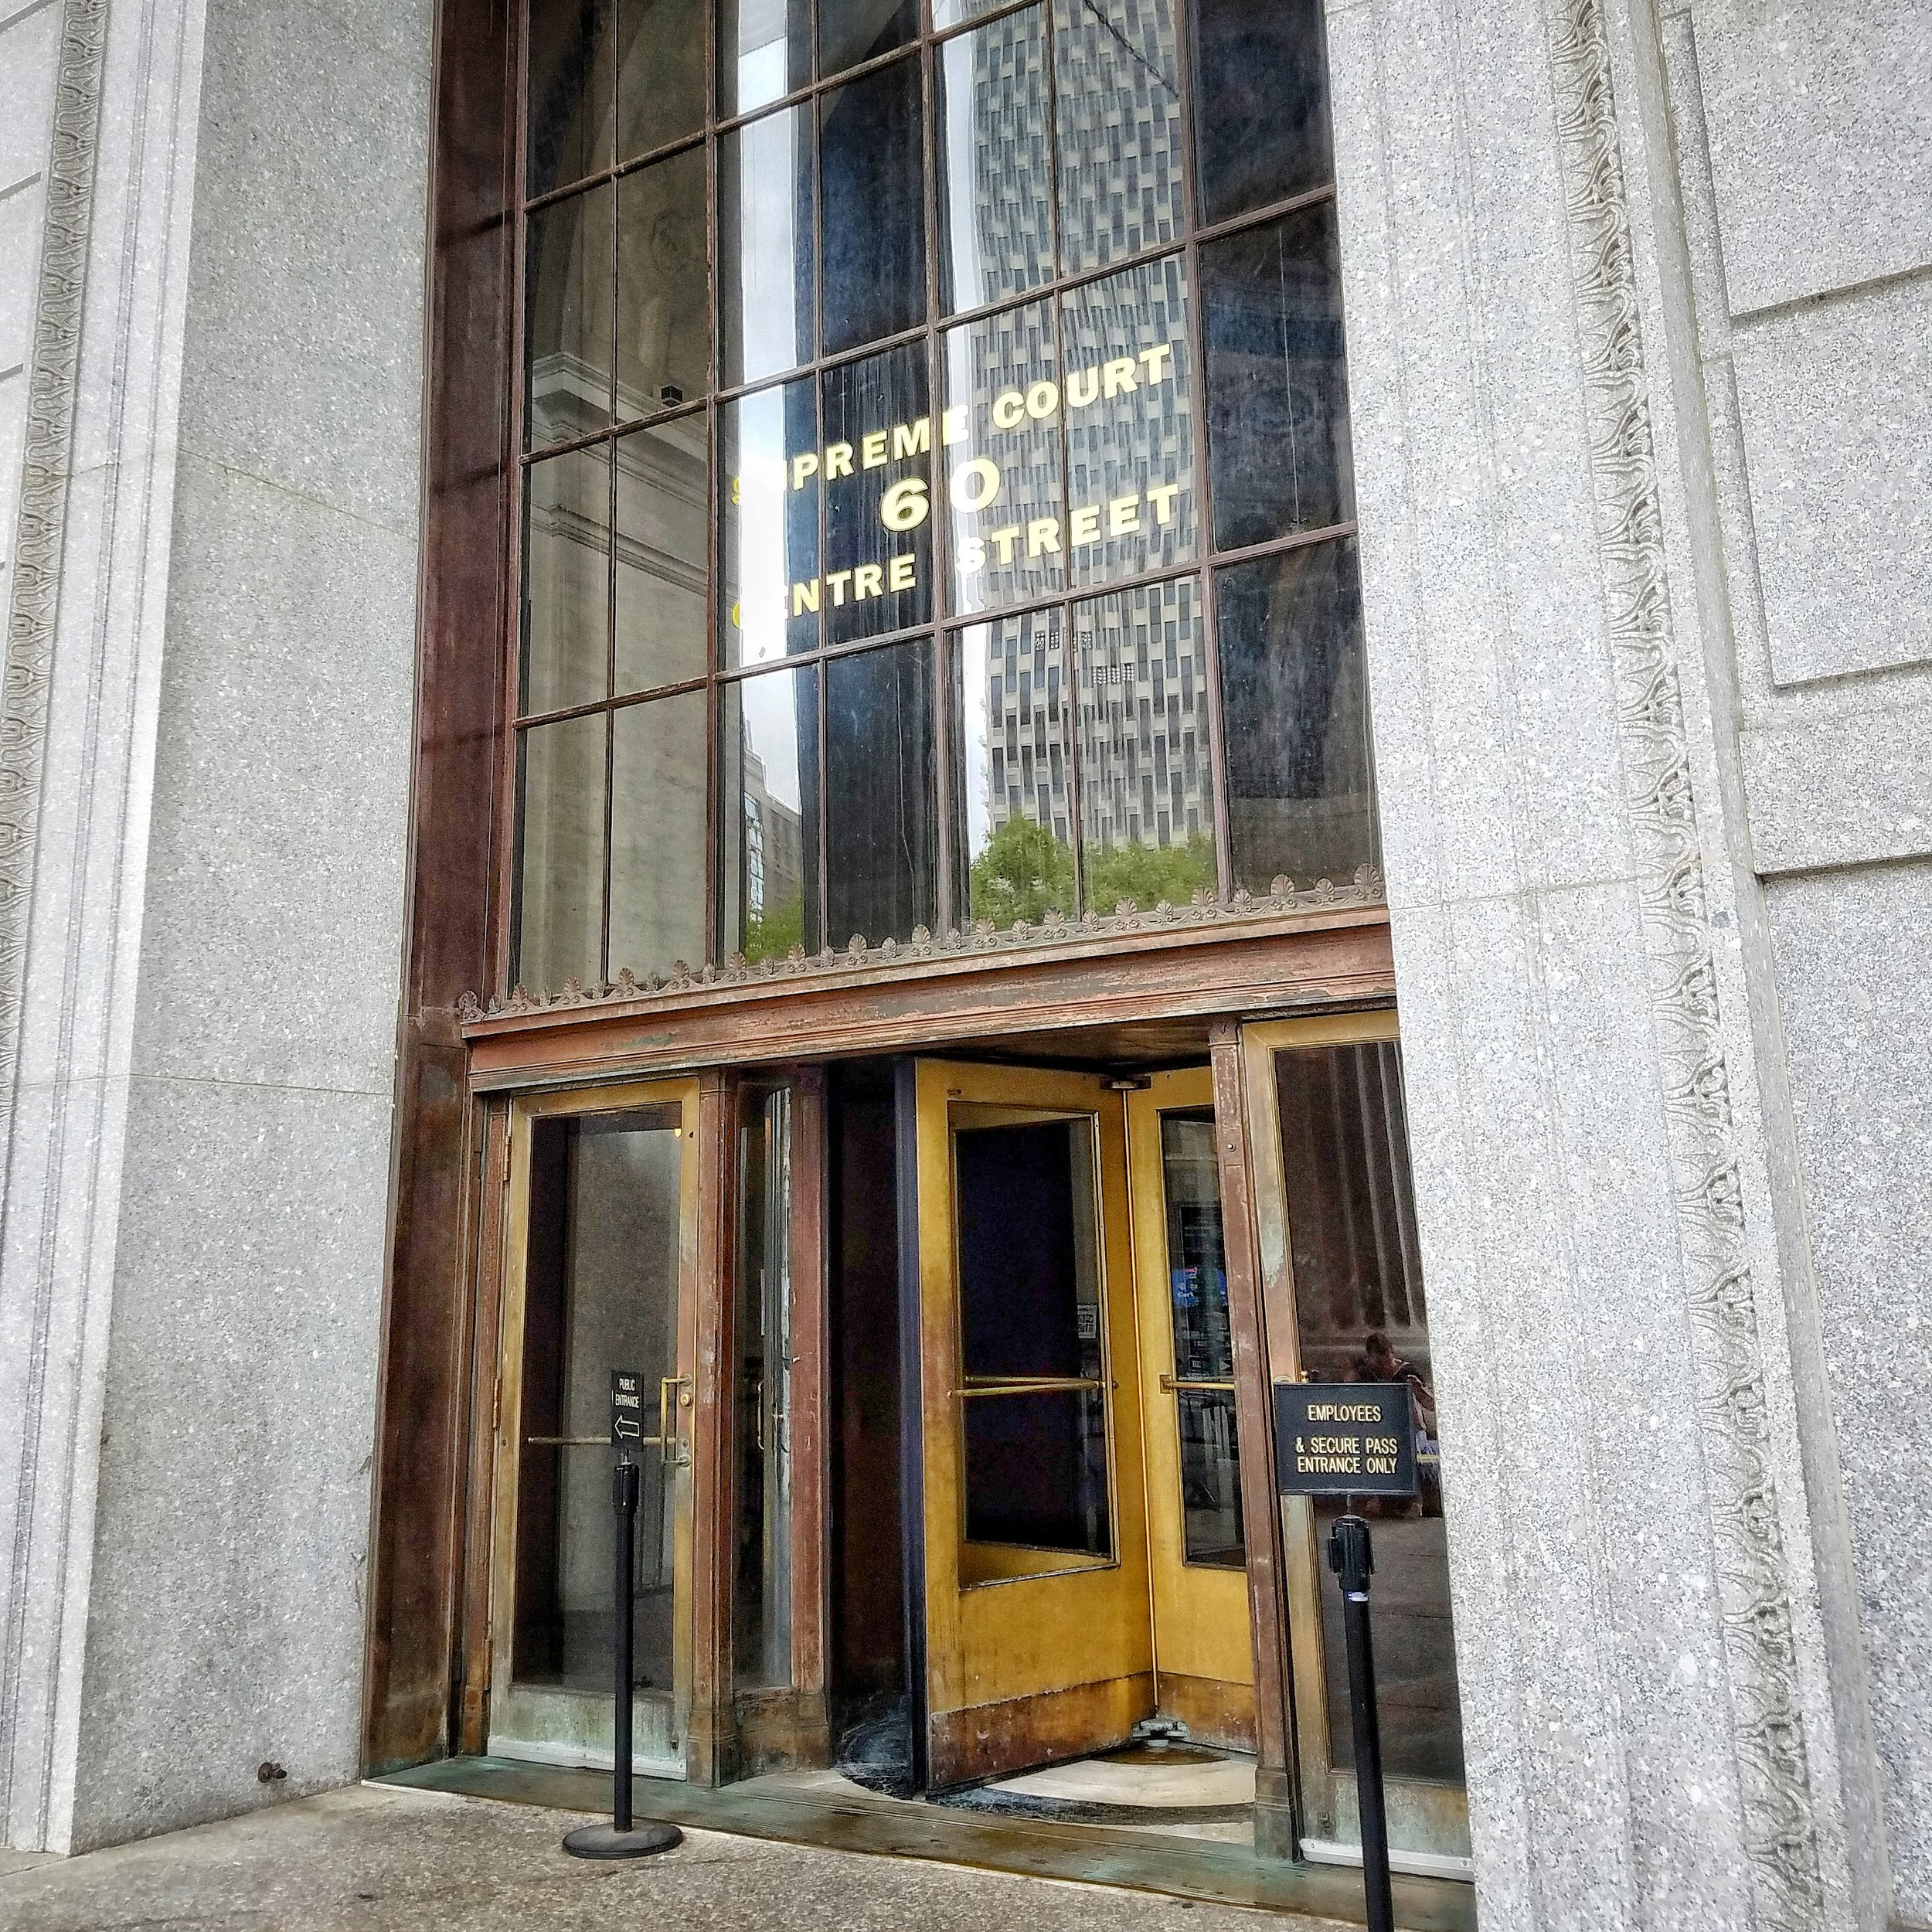 """The entrance to 60 Centre shows the building's address in the windows (""""Supreme Court 60 Centre Street""""). There is a wooden revolving door in the center and two regular doors on either side. The regular door on the right is reserved for employees."""